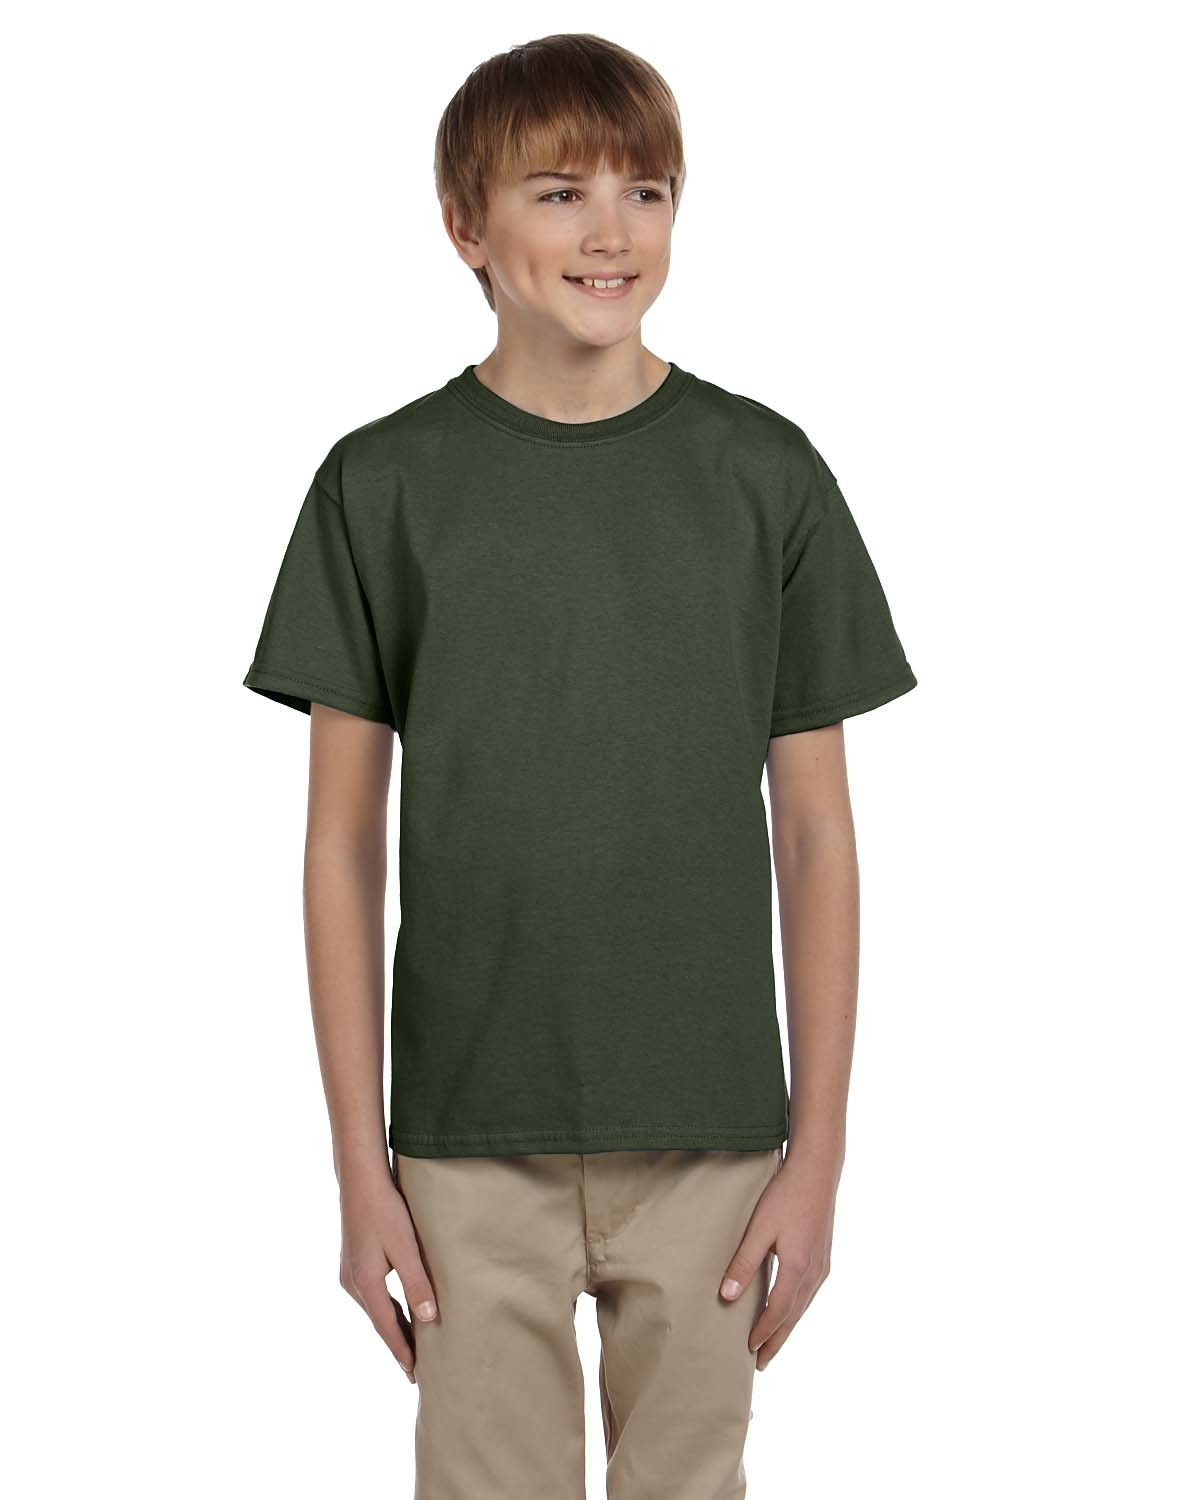 3931B Fruit of the Loom MILITARY GREEN